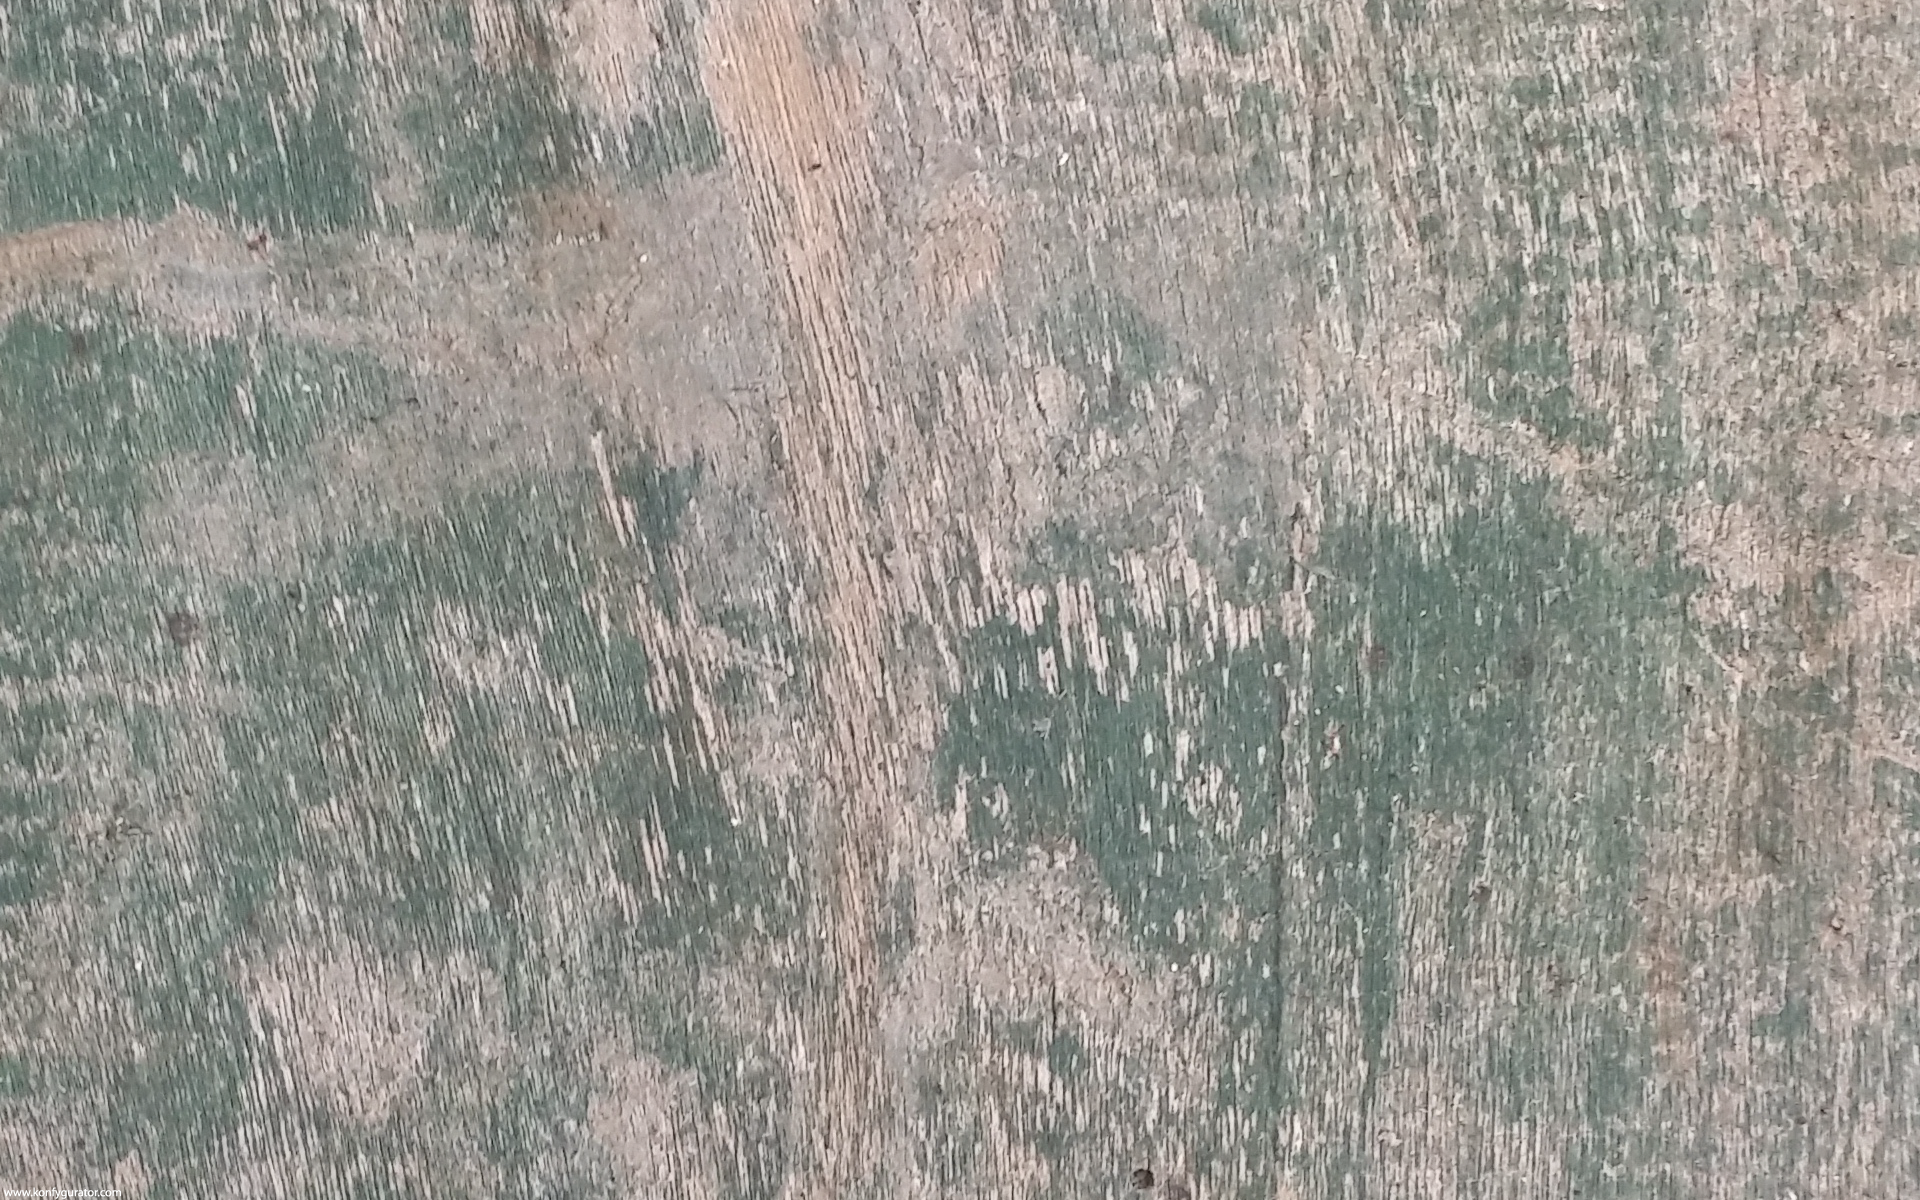 HD Wallpapers - Textures - wood, green, brown